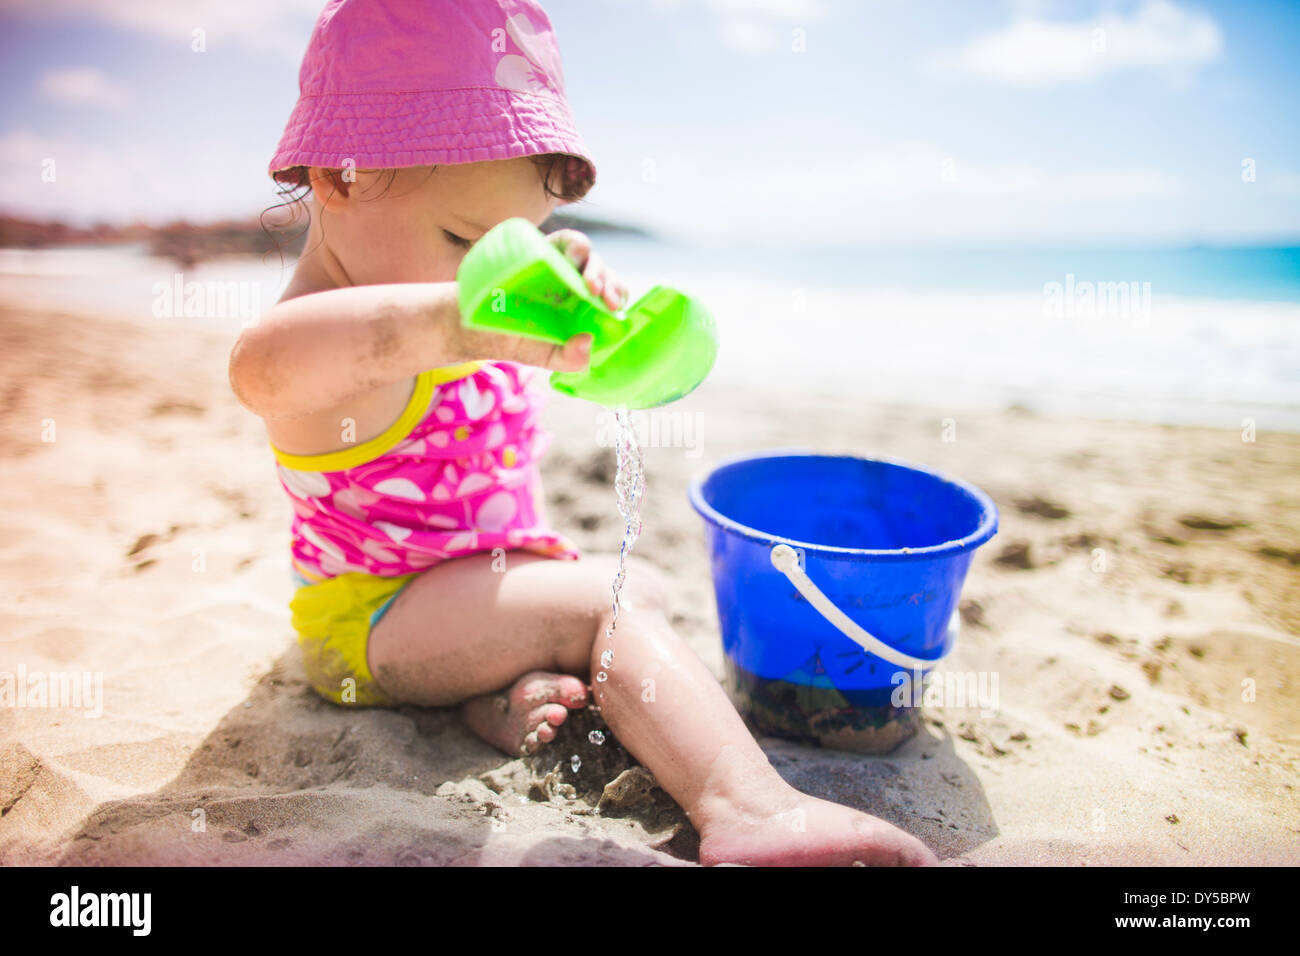 Baby playing on sandy beach with bucket and spade - Stock Image